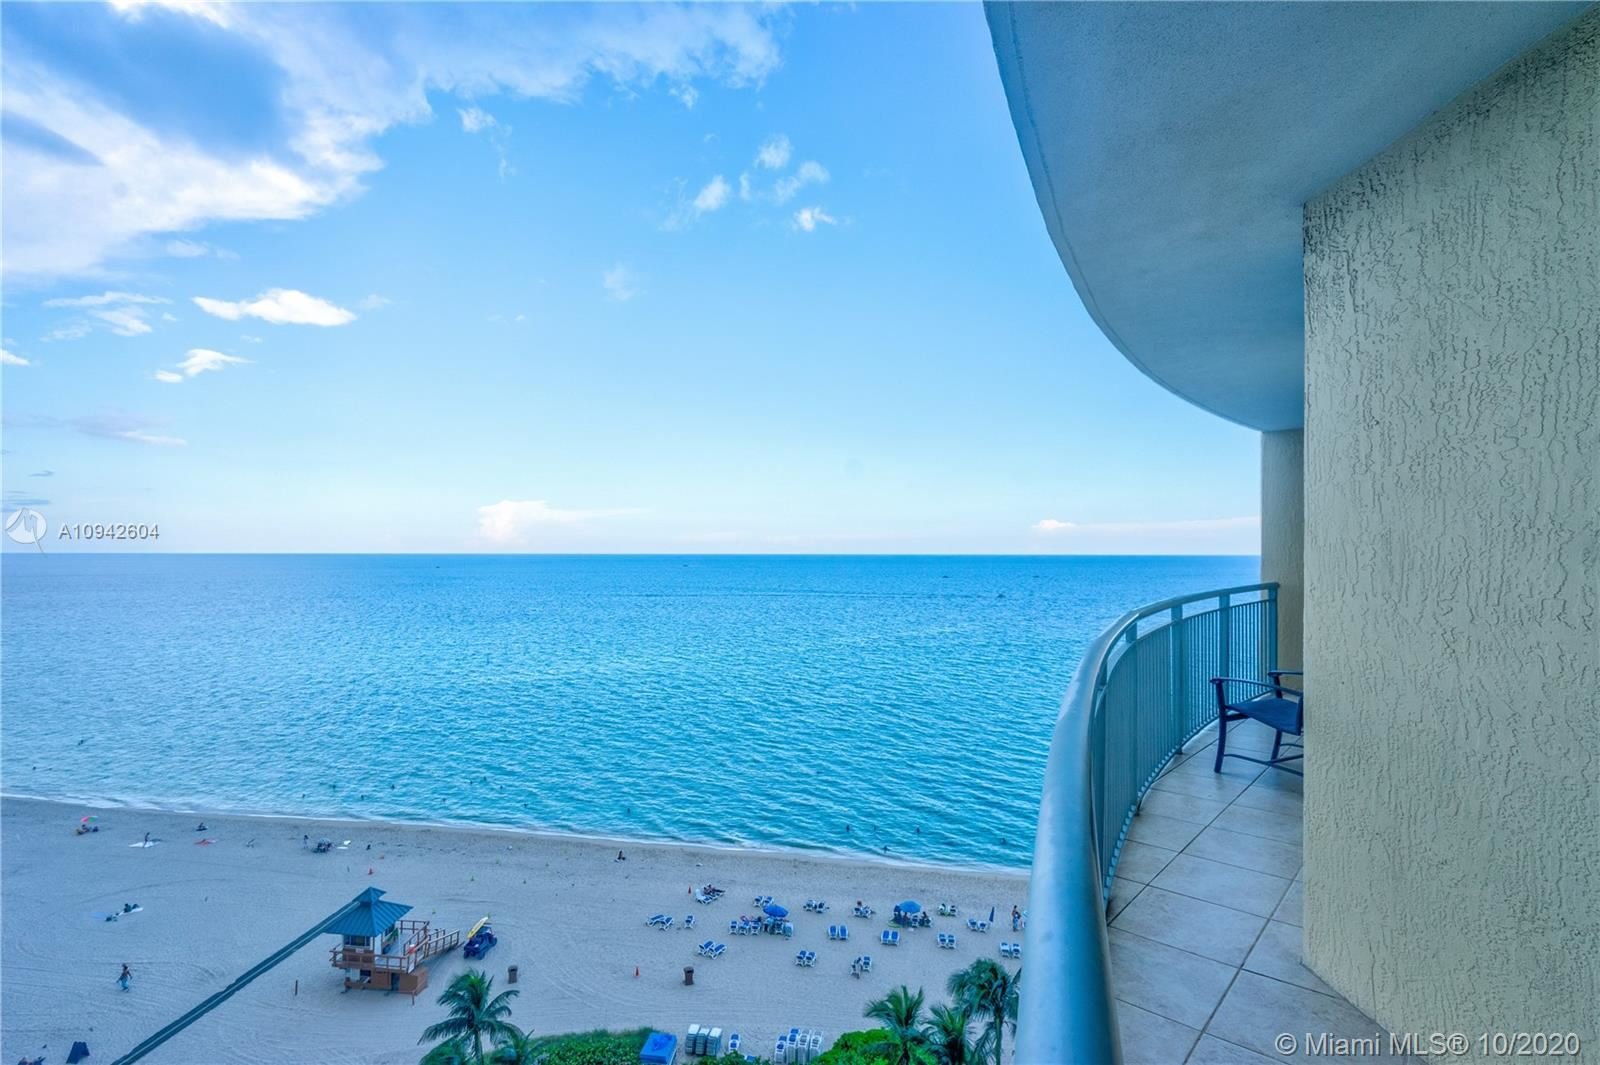 17375 Collins Ave #1208, Sunny Isles, FL 33160 - #: A10942604